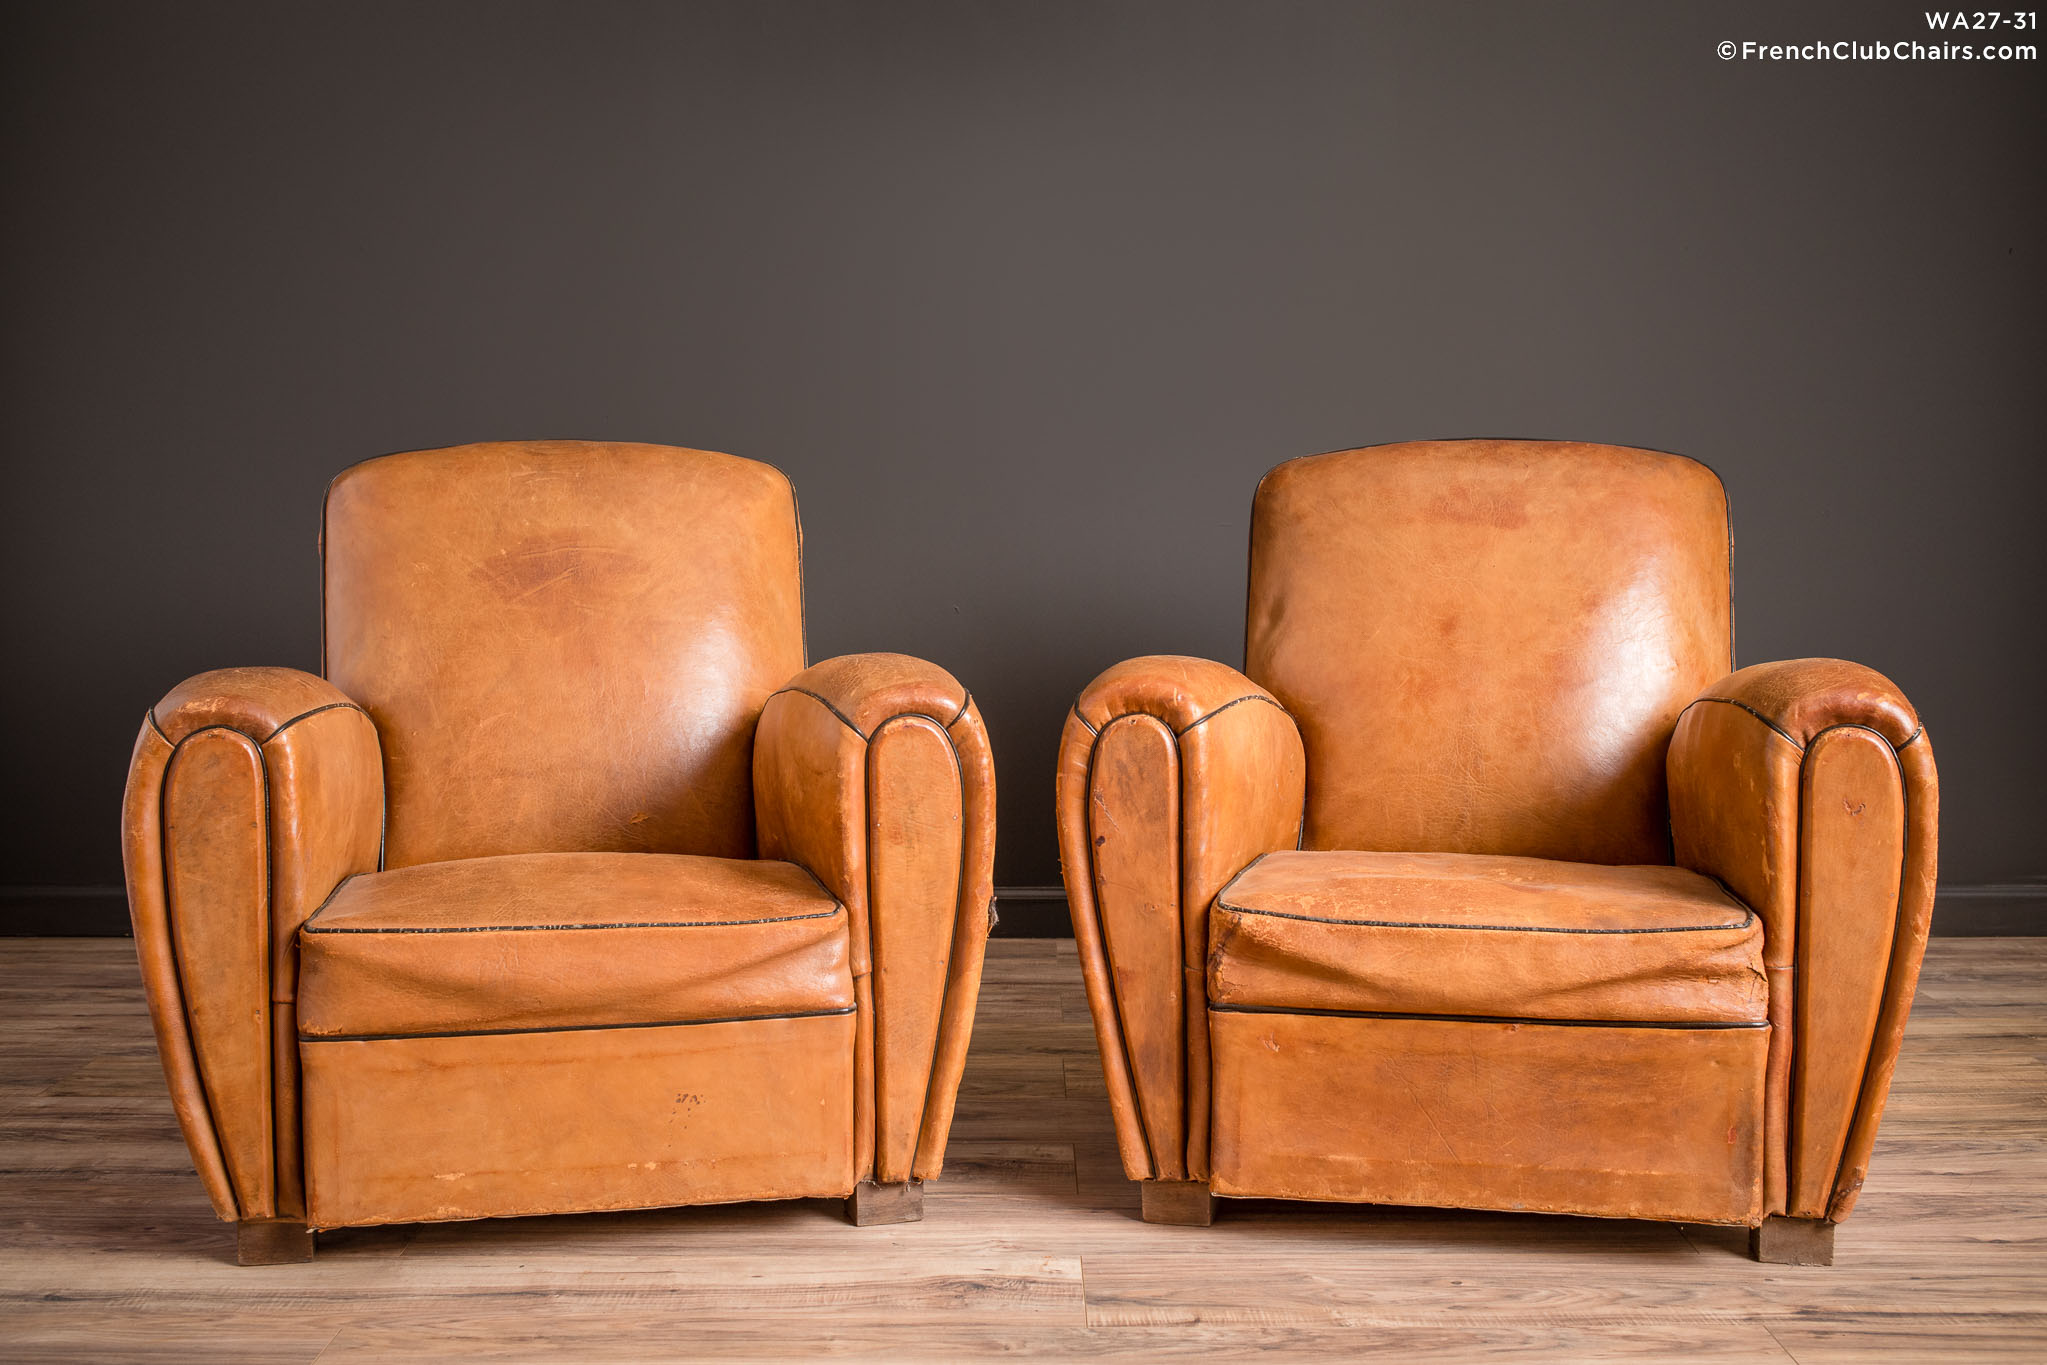 WA_27-31_Picardie_Library_Light_Caramel_Pair_R_1TQ-v01-williams-antiks-leather-french-club-chair-wa_fcccom